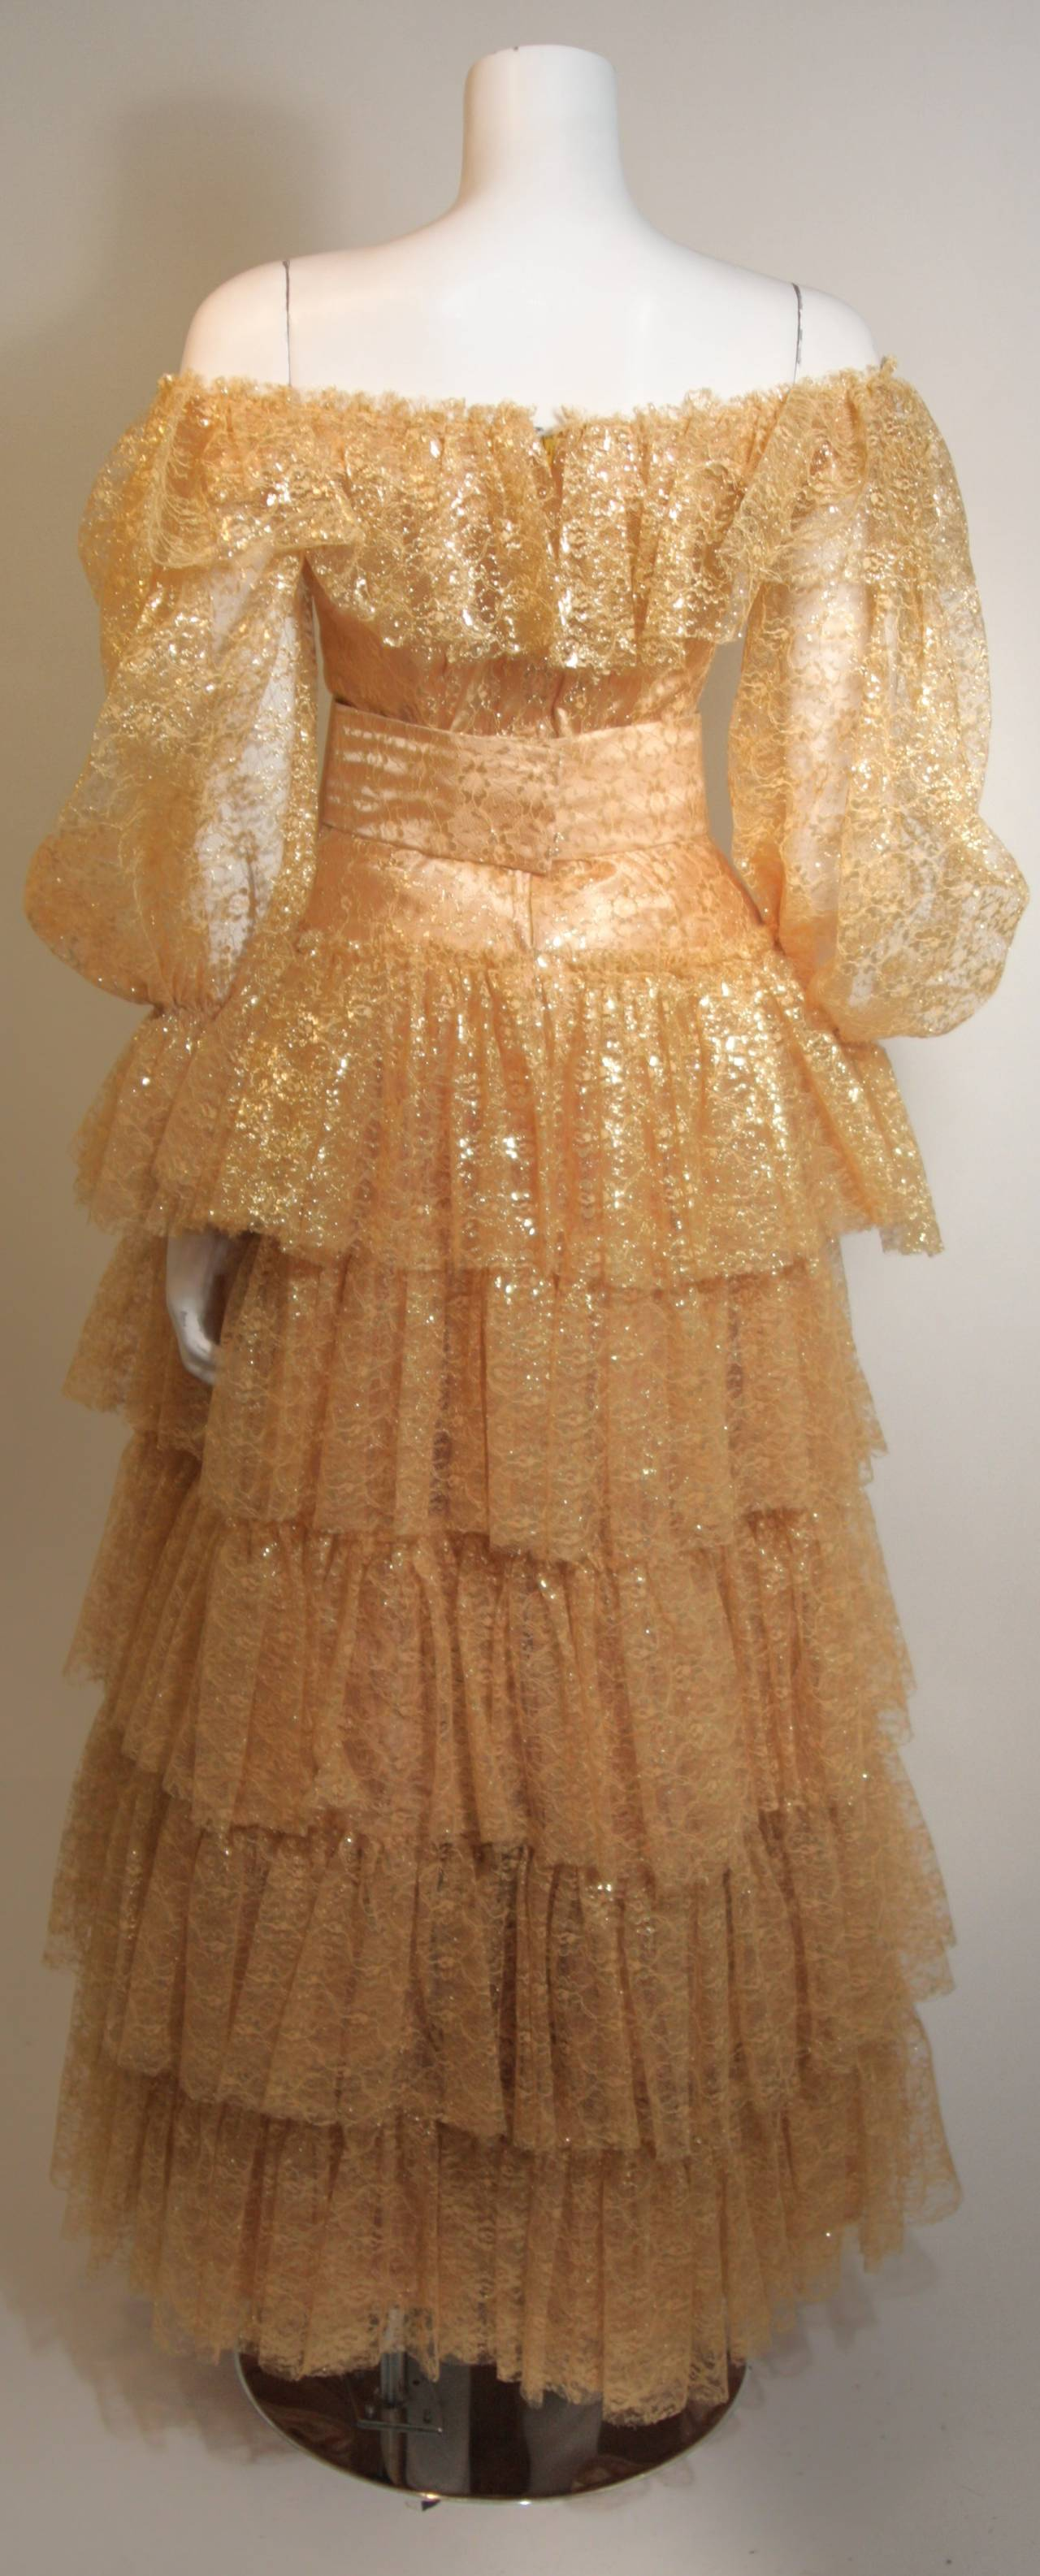 Attributed to Travilla Gold Tiered Lace Ball Gown with sheer lace sleeves size 4 8